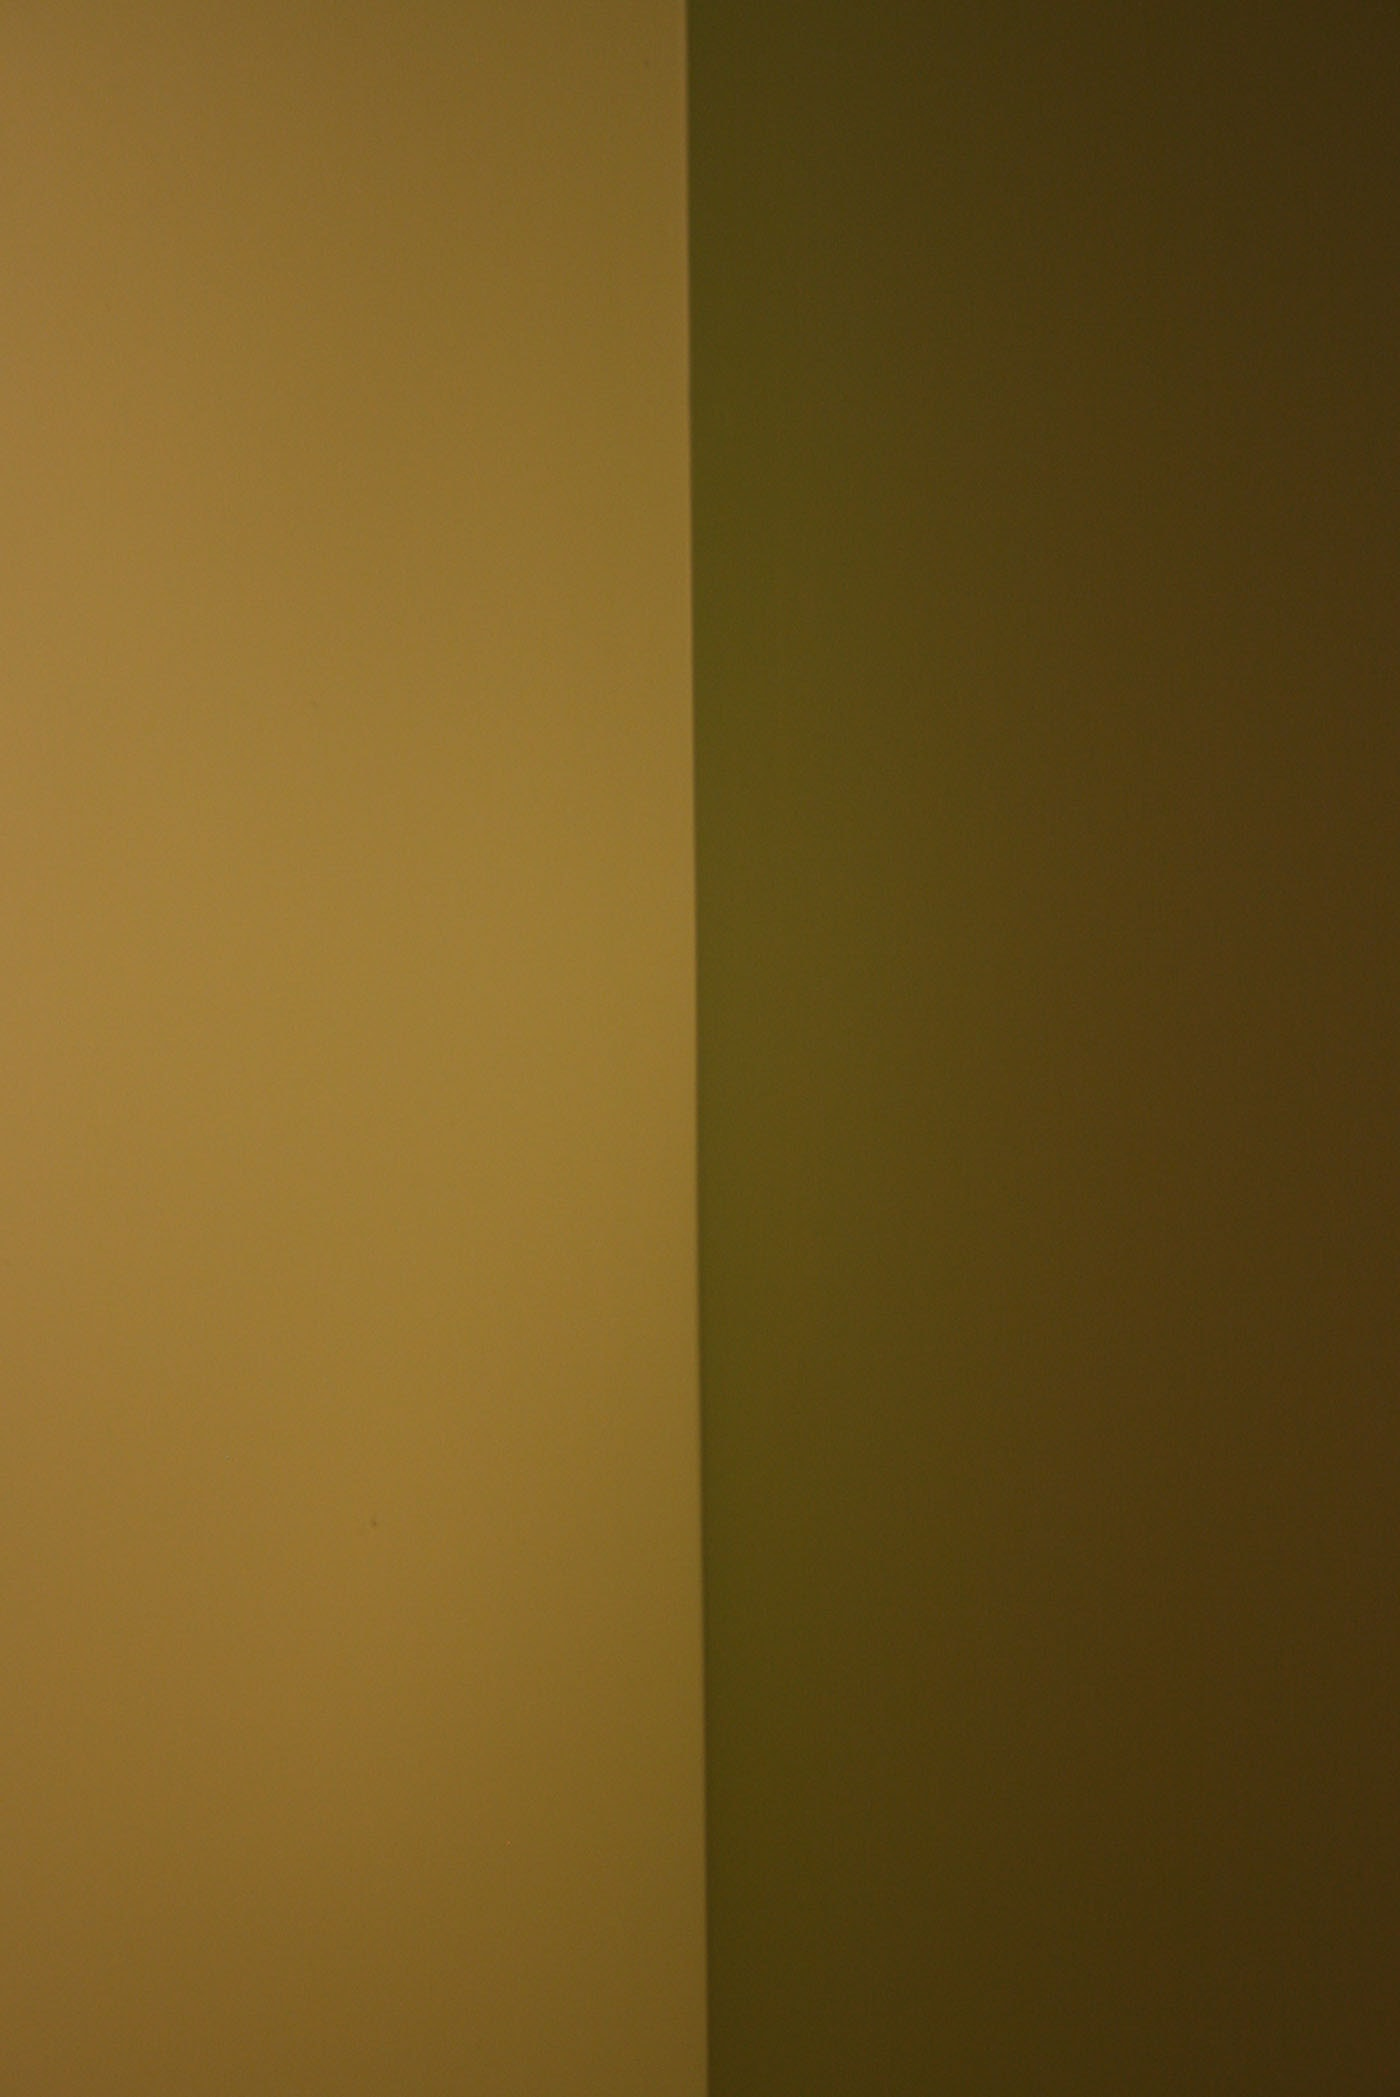 Shades of Green - where the wall meets the ceiling.